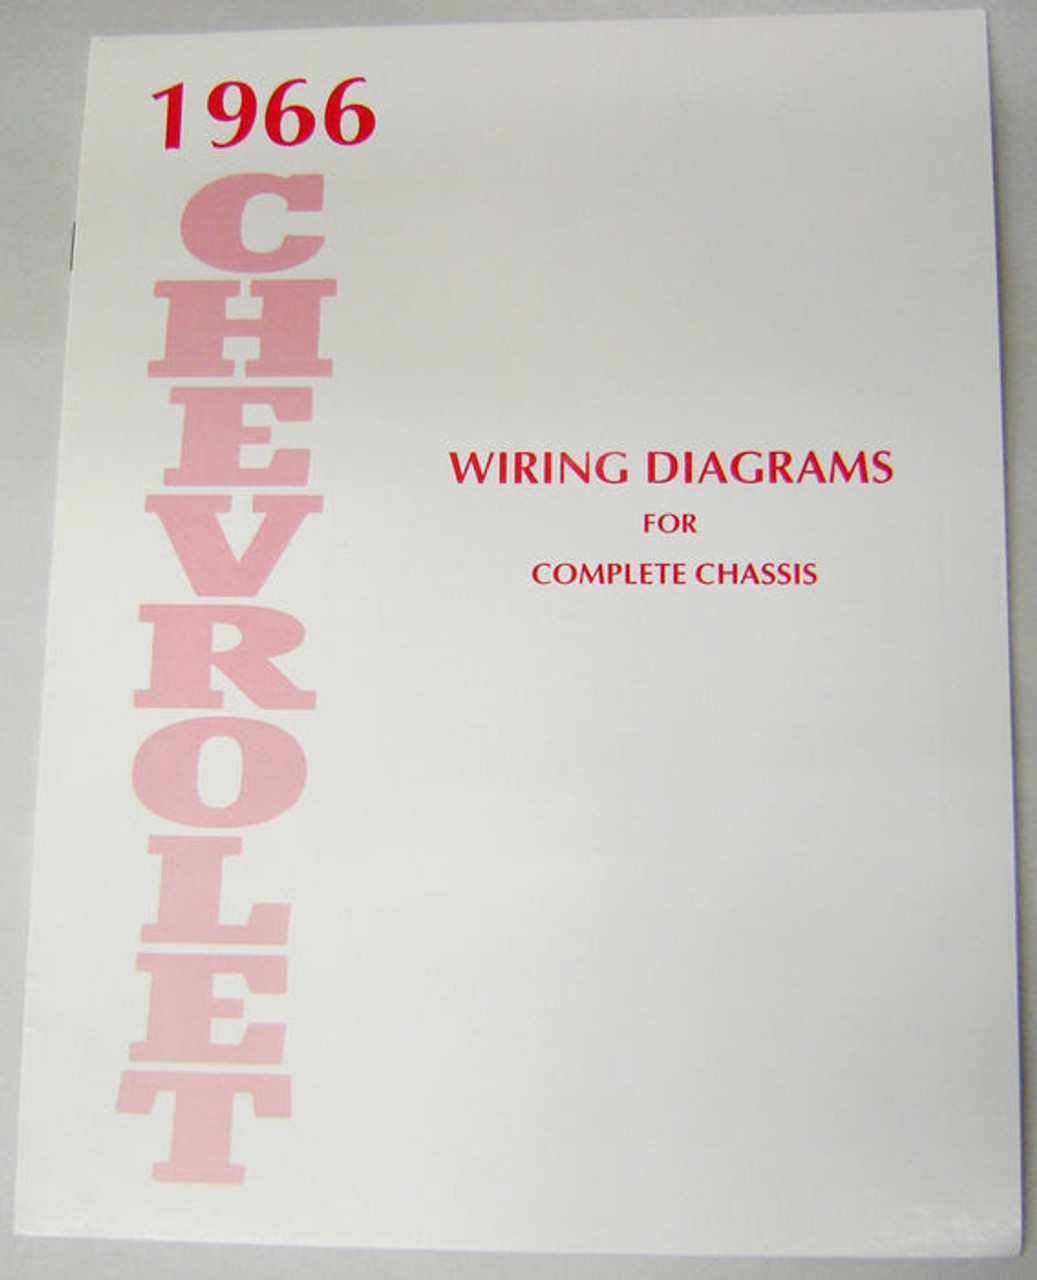 L1022_zpsjouiuker__97070.1443480941?c=2 66 1966 chevy impala electrical wiring diagram manual i 5 1966 chevy caprice wiring diagram at gsmx.co